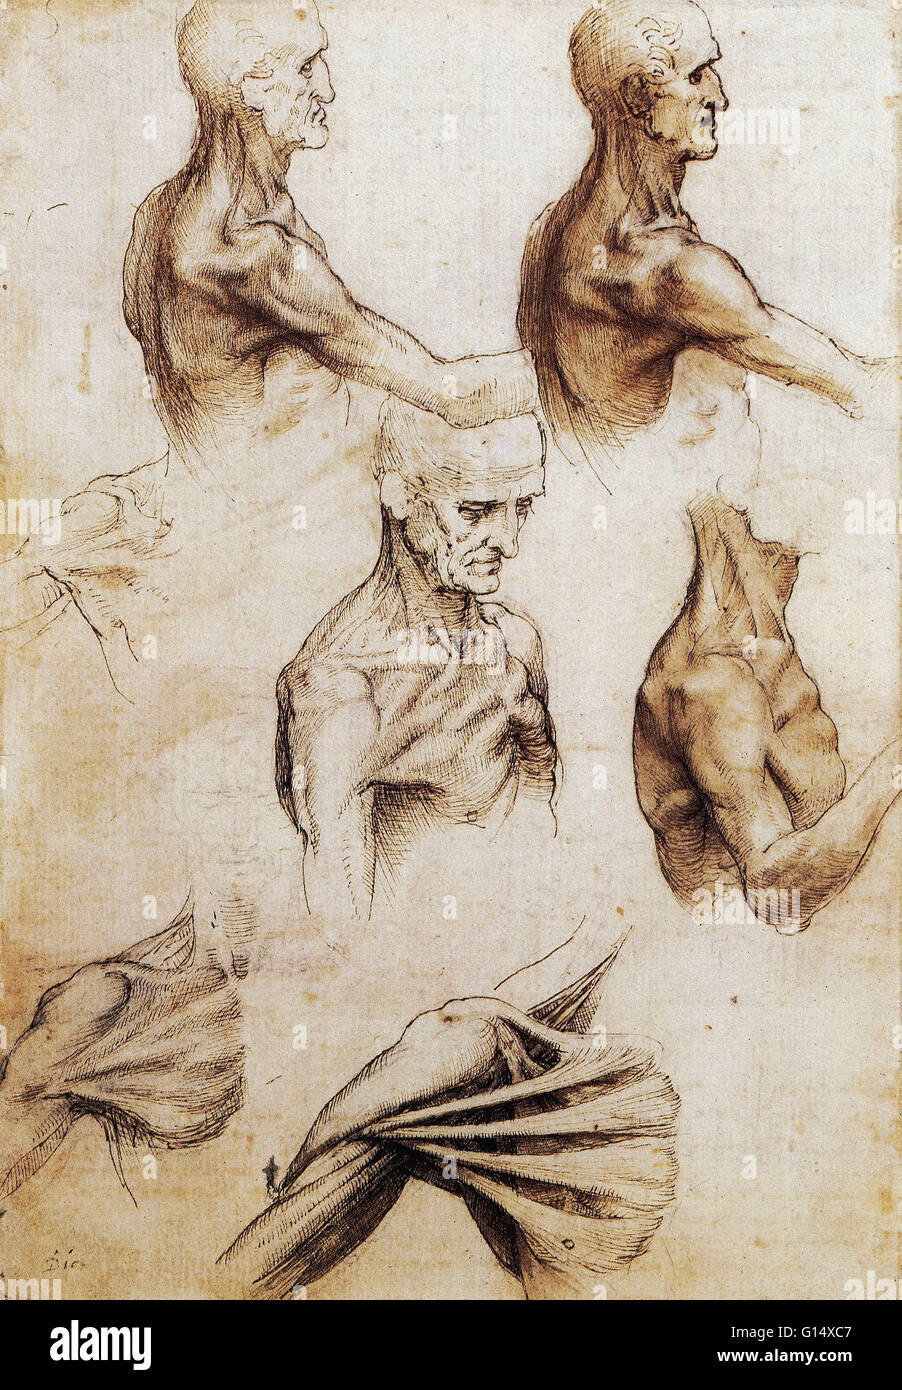 Anatomical drawings by Leonardo Da Vinci from around 1510 Stock ...